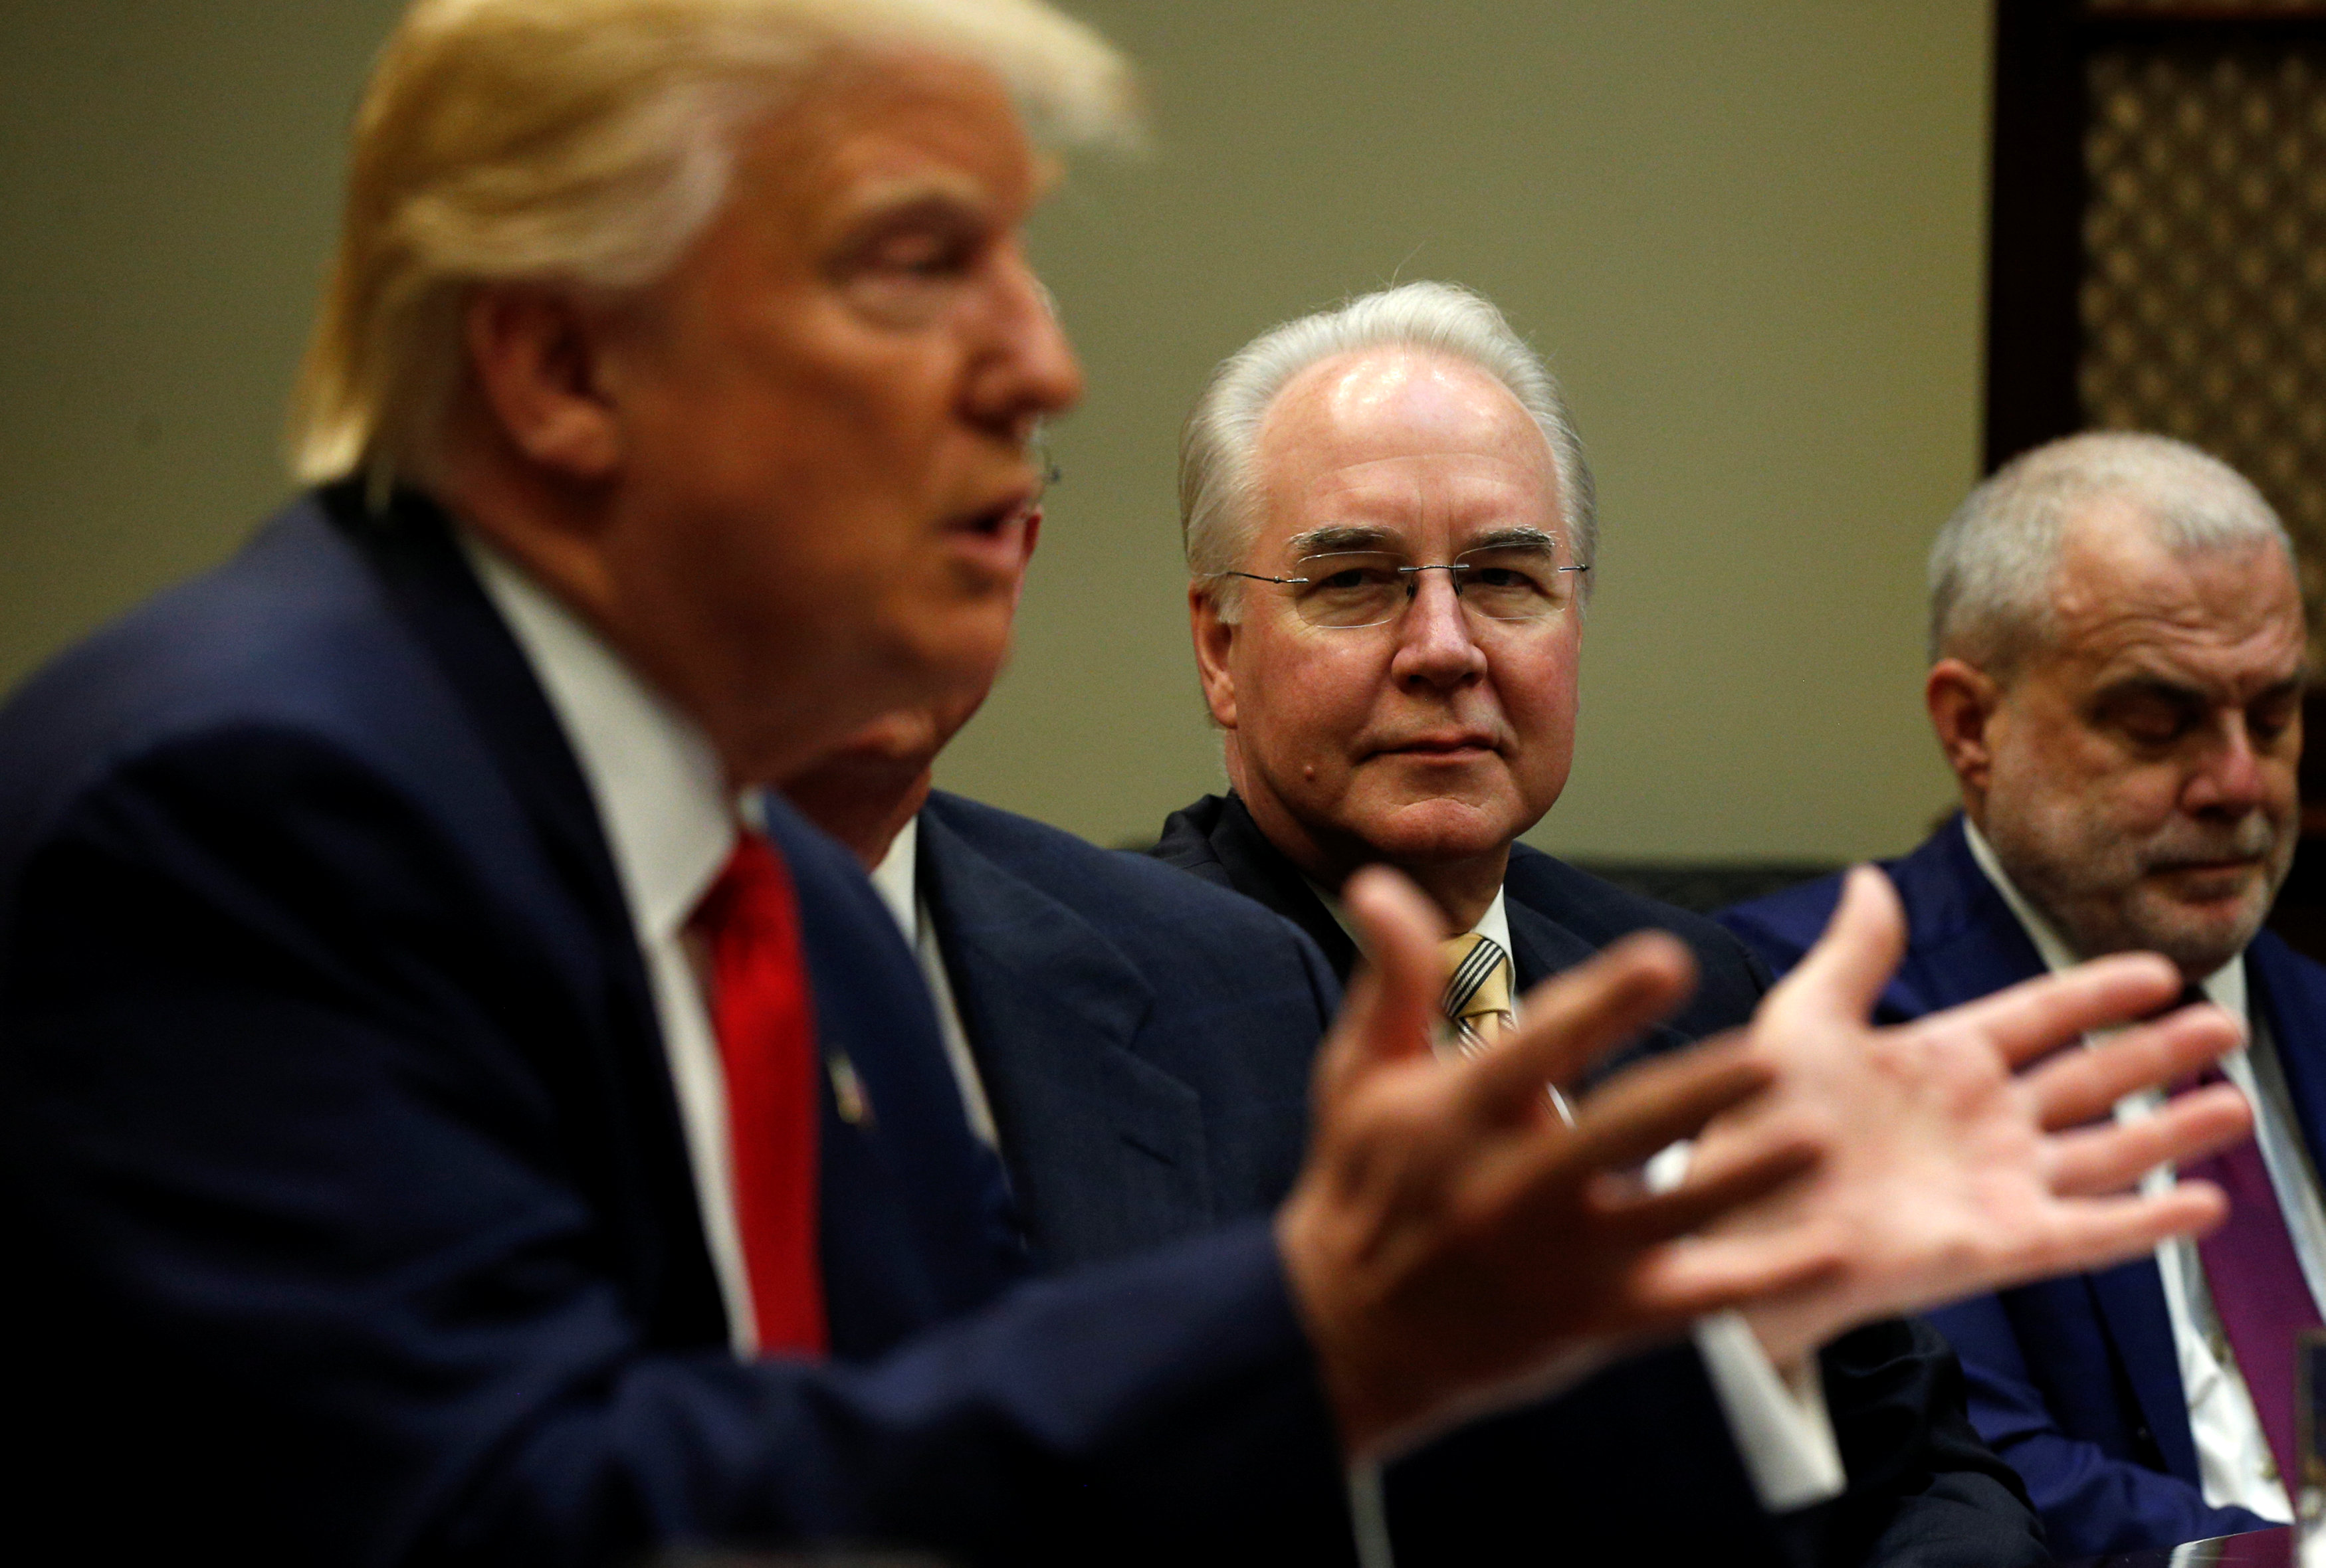 Health and Human Services Secretary Tom Price (C) and Aetna CEO Mark Bertolini (R) listen to U.S. President Donald Trump speak during a meeting with health insurance company CEOs at the White House in Washington, U.S.